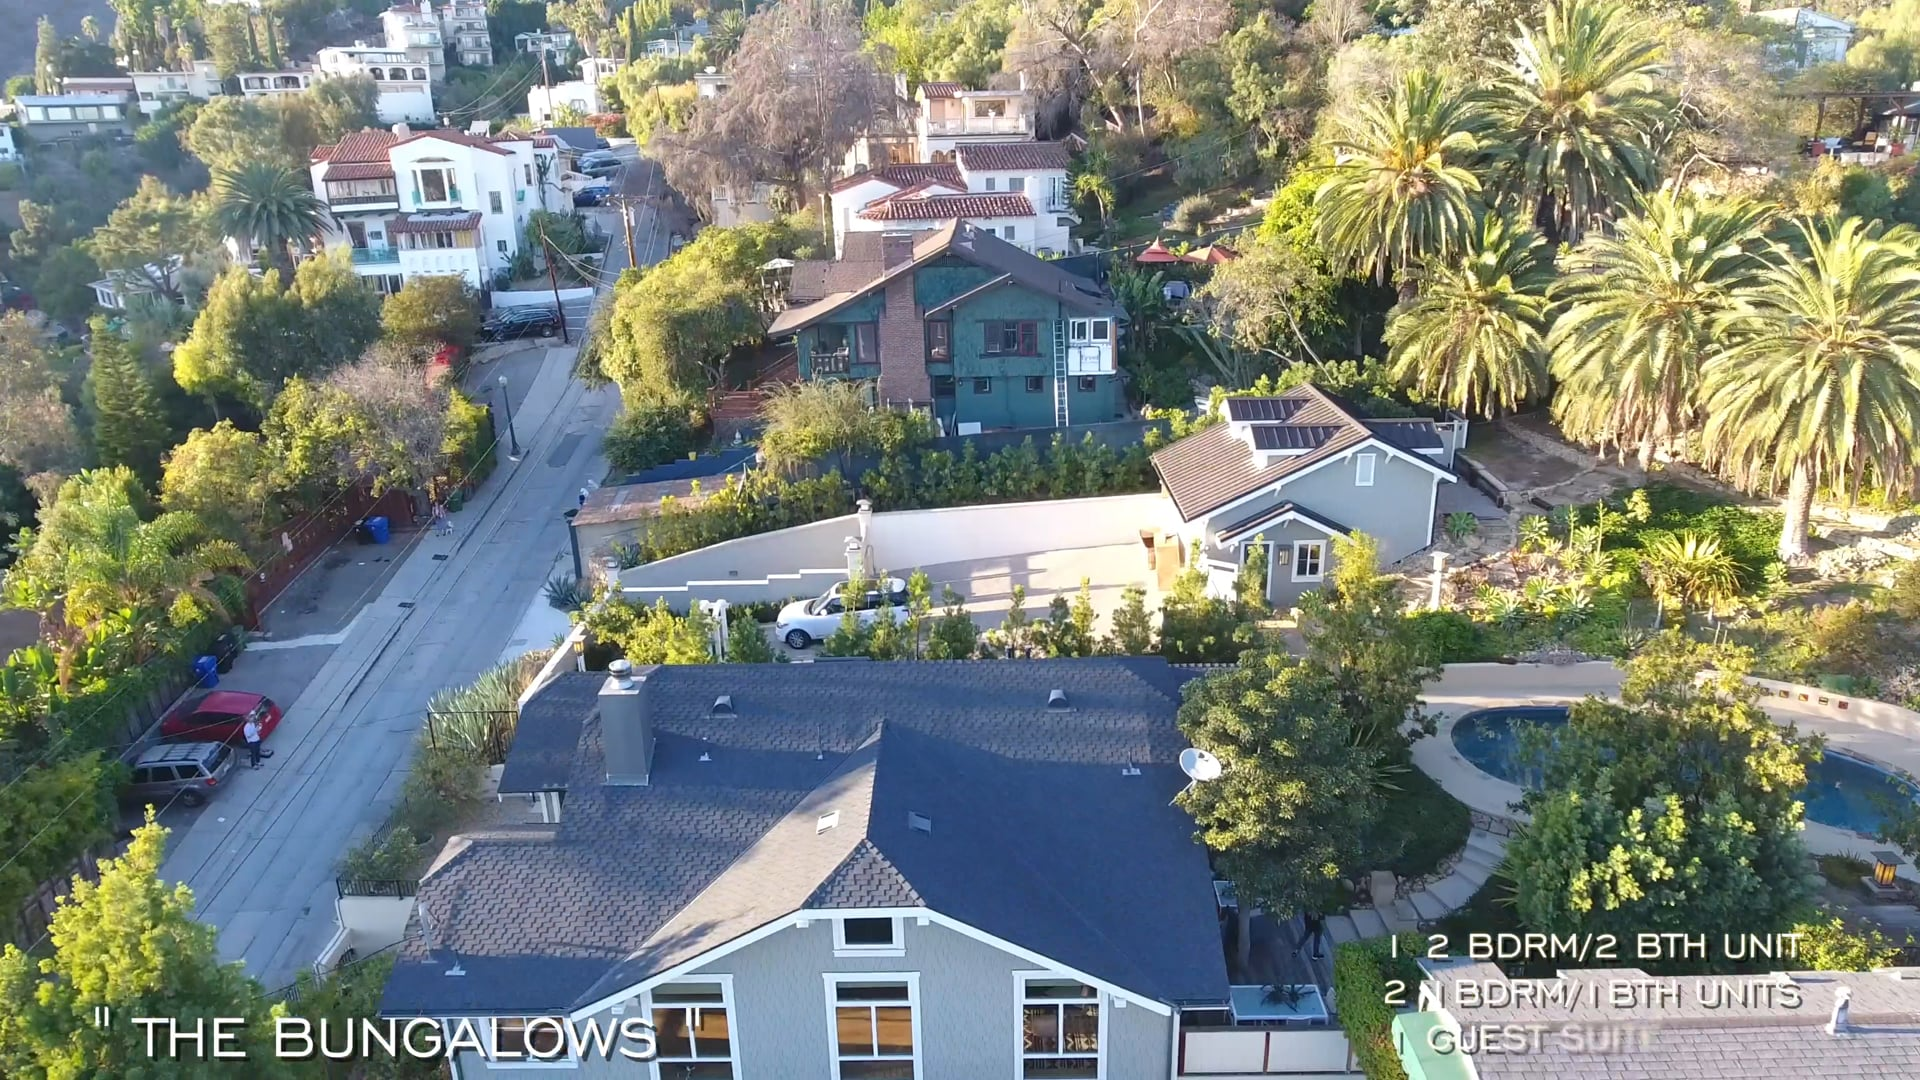 1954-1960 Hillcrest Road, Los Angeles, CA - 15 Multifamily Investment